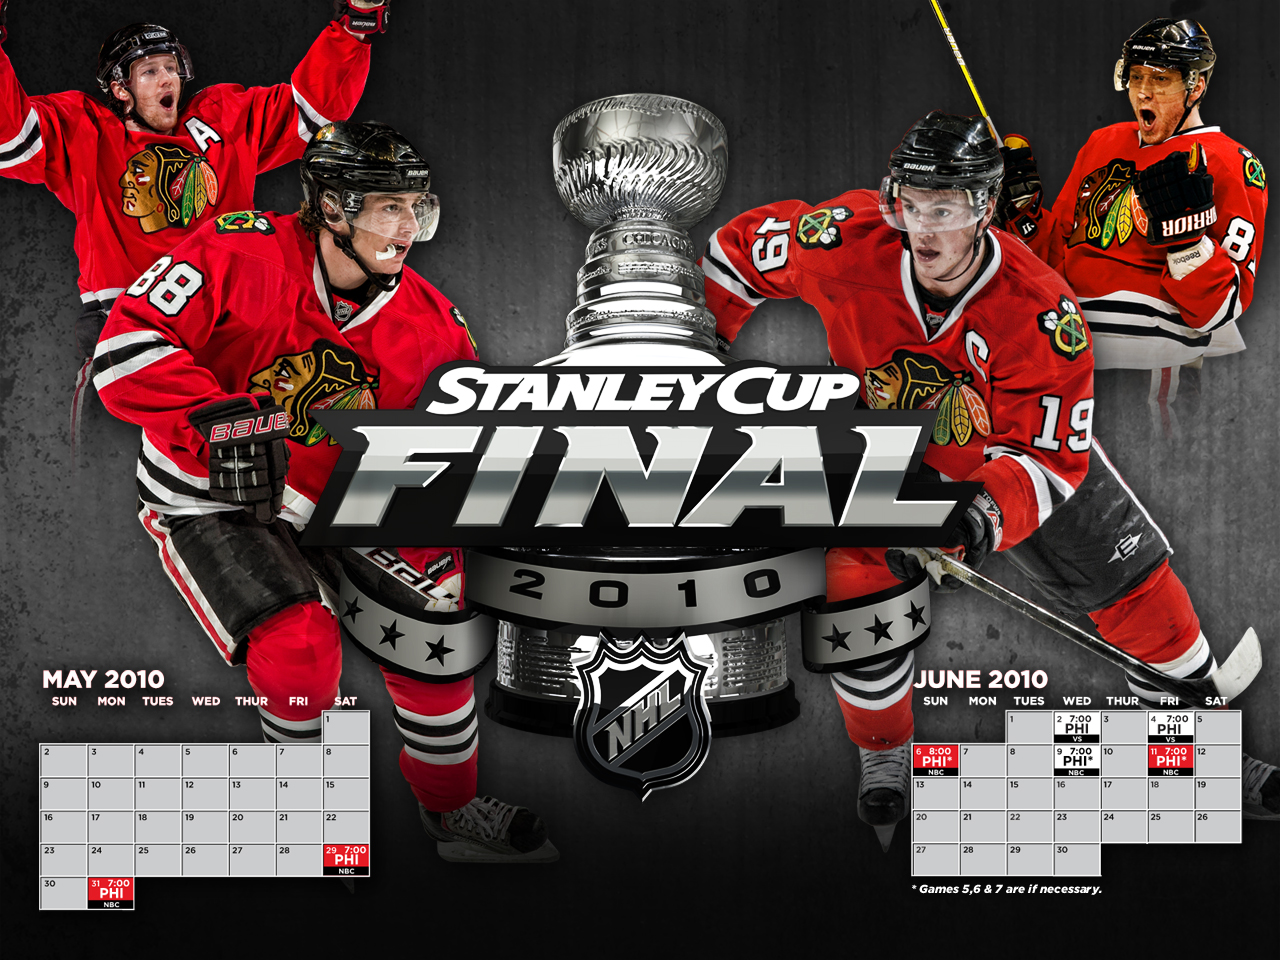 Stanley Cup Finals  Philadelphia Flyers vs Chicago Blackhawks   Page 1280x960